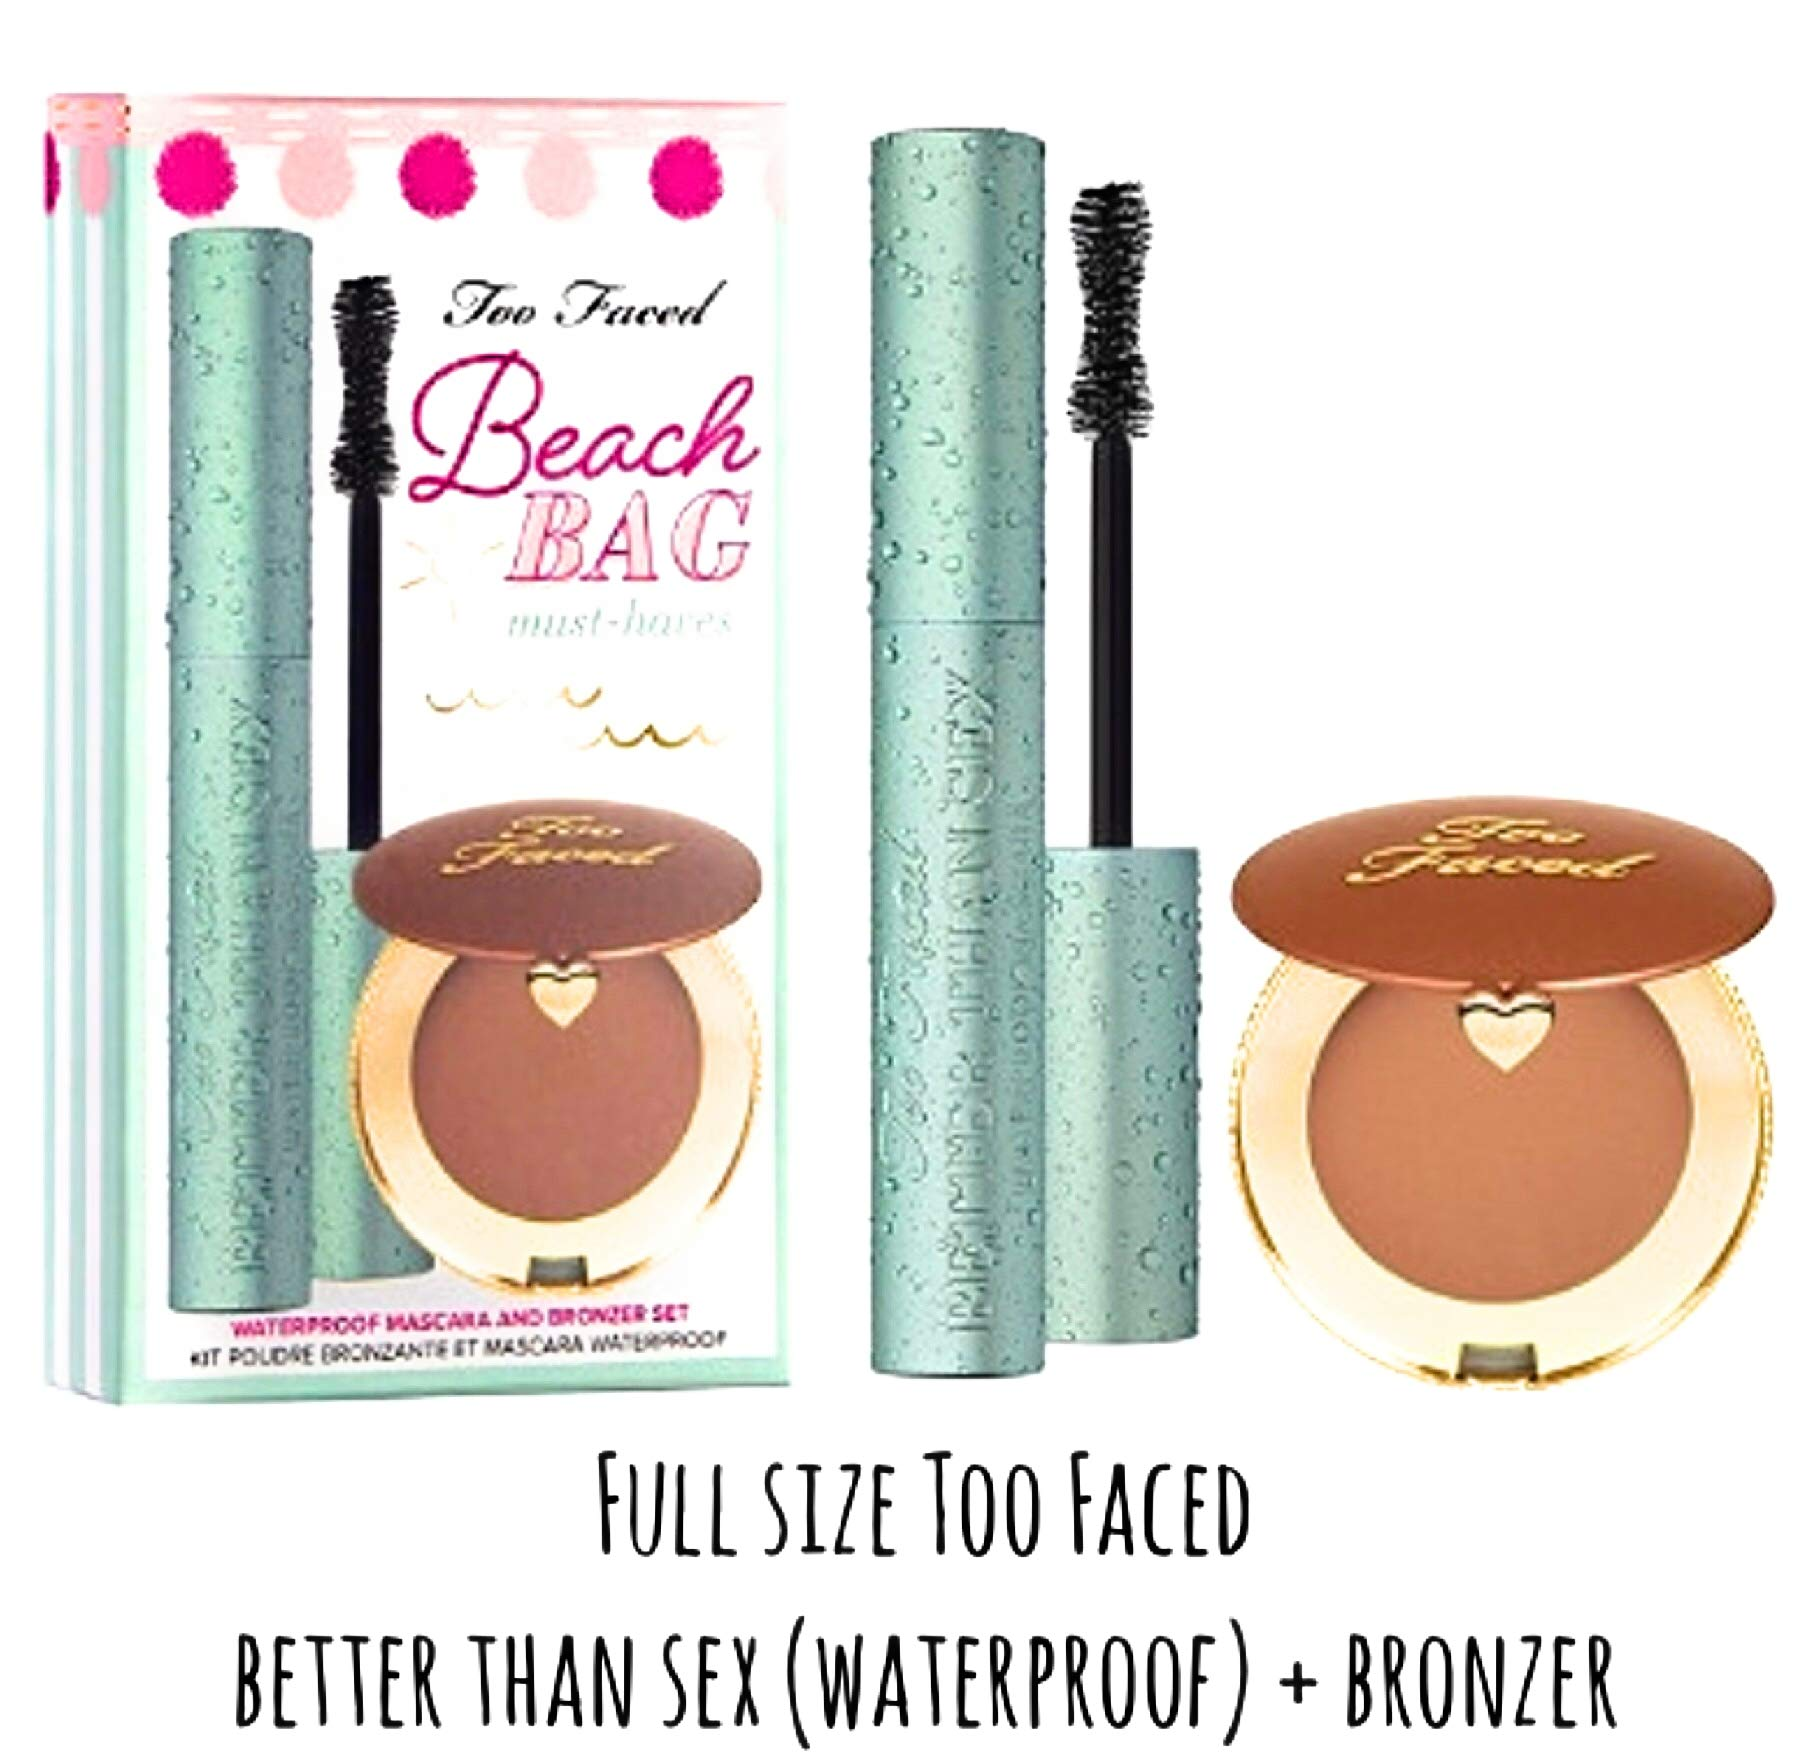 Too Faced Waterproof Better Than Sex Mascara Plus Bronzer Set Beach Bag Must Haves by Too Faced